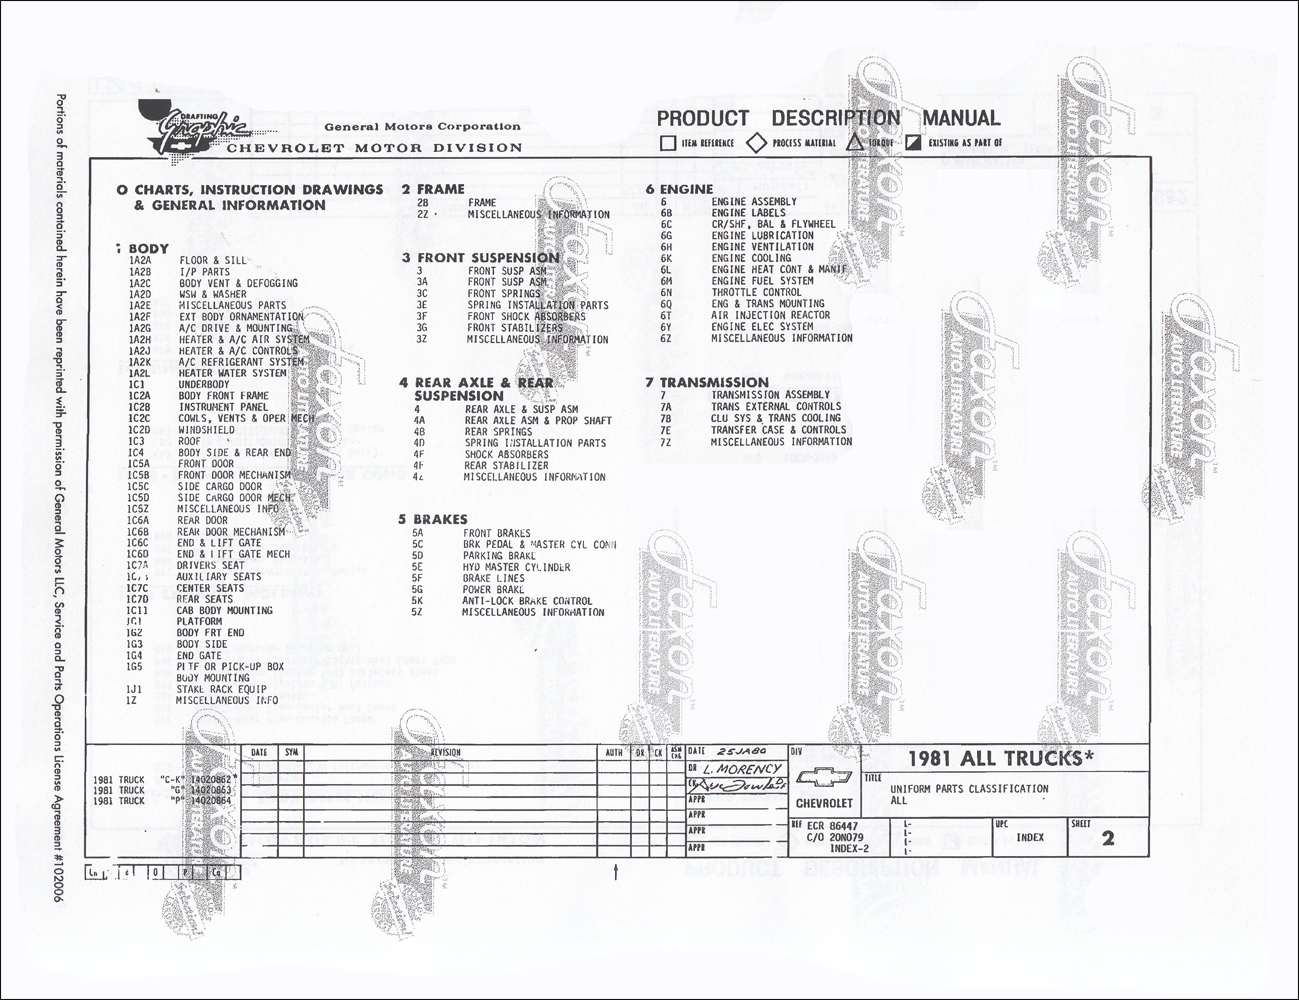 The History Of Fords Iconic Flathead Engine additionally Vintage Harley Davidson Wiring Diagrams besides Corvair Engine Diagram further Engine Casting Number Location in addition 53wagon. on 1946 chevy truck wiring diagram